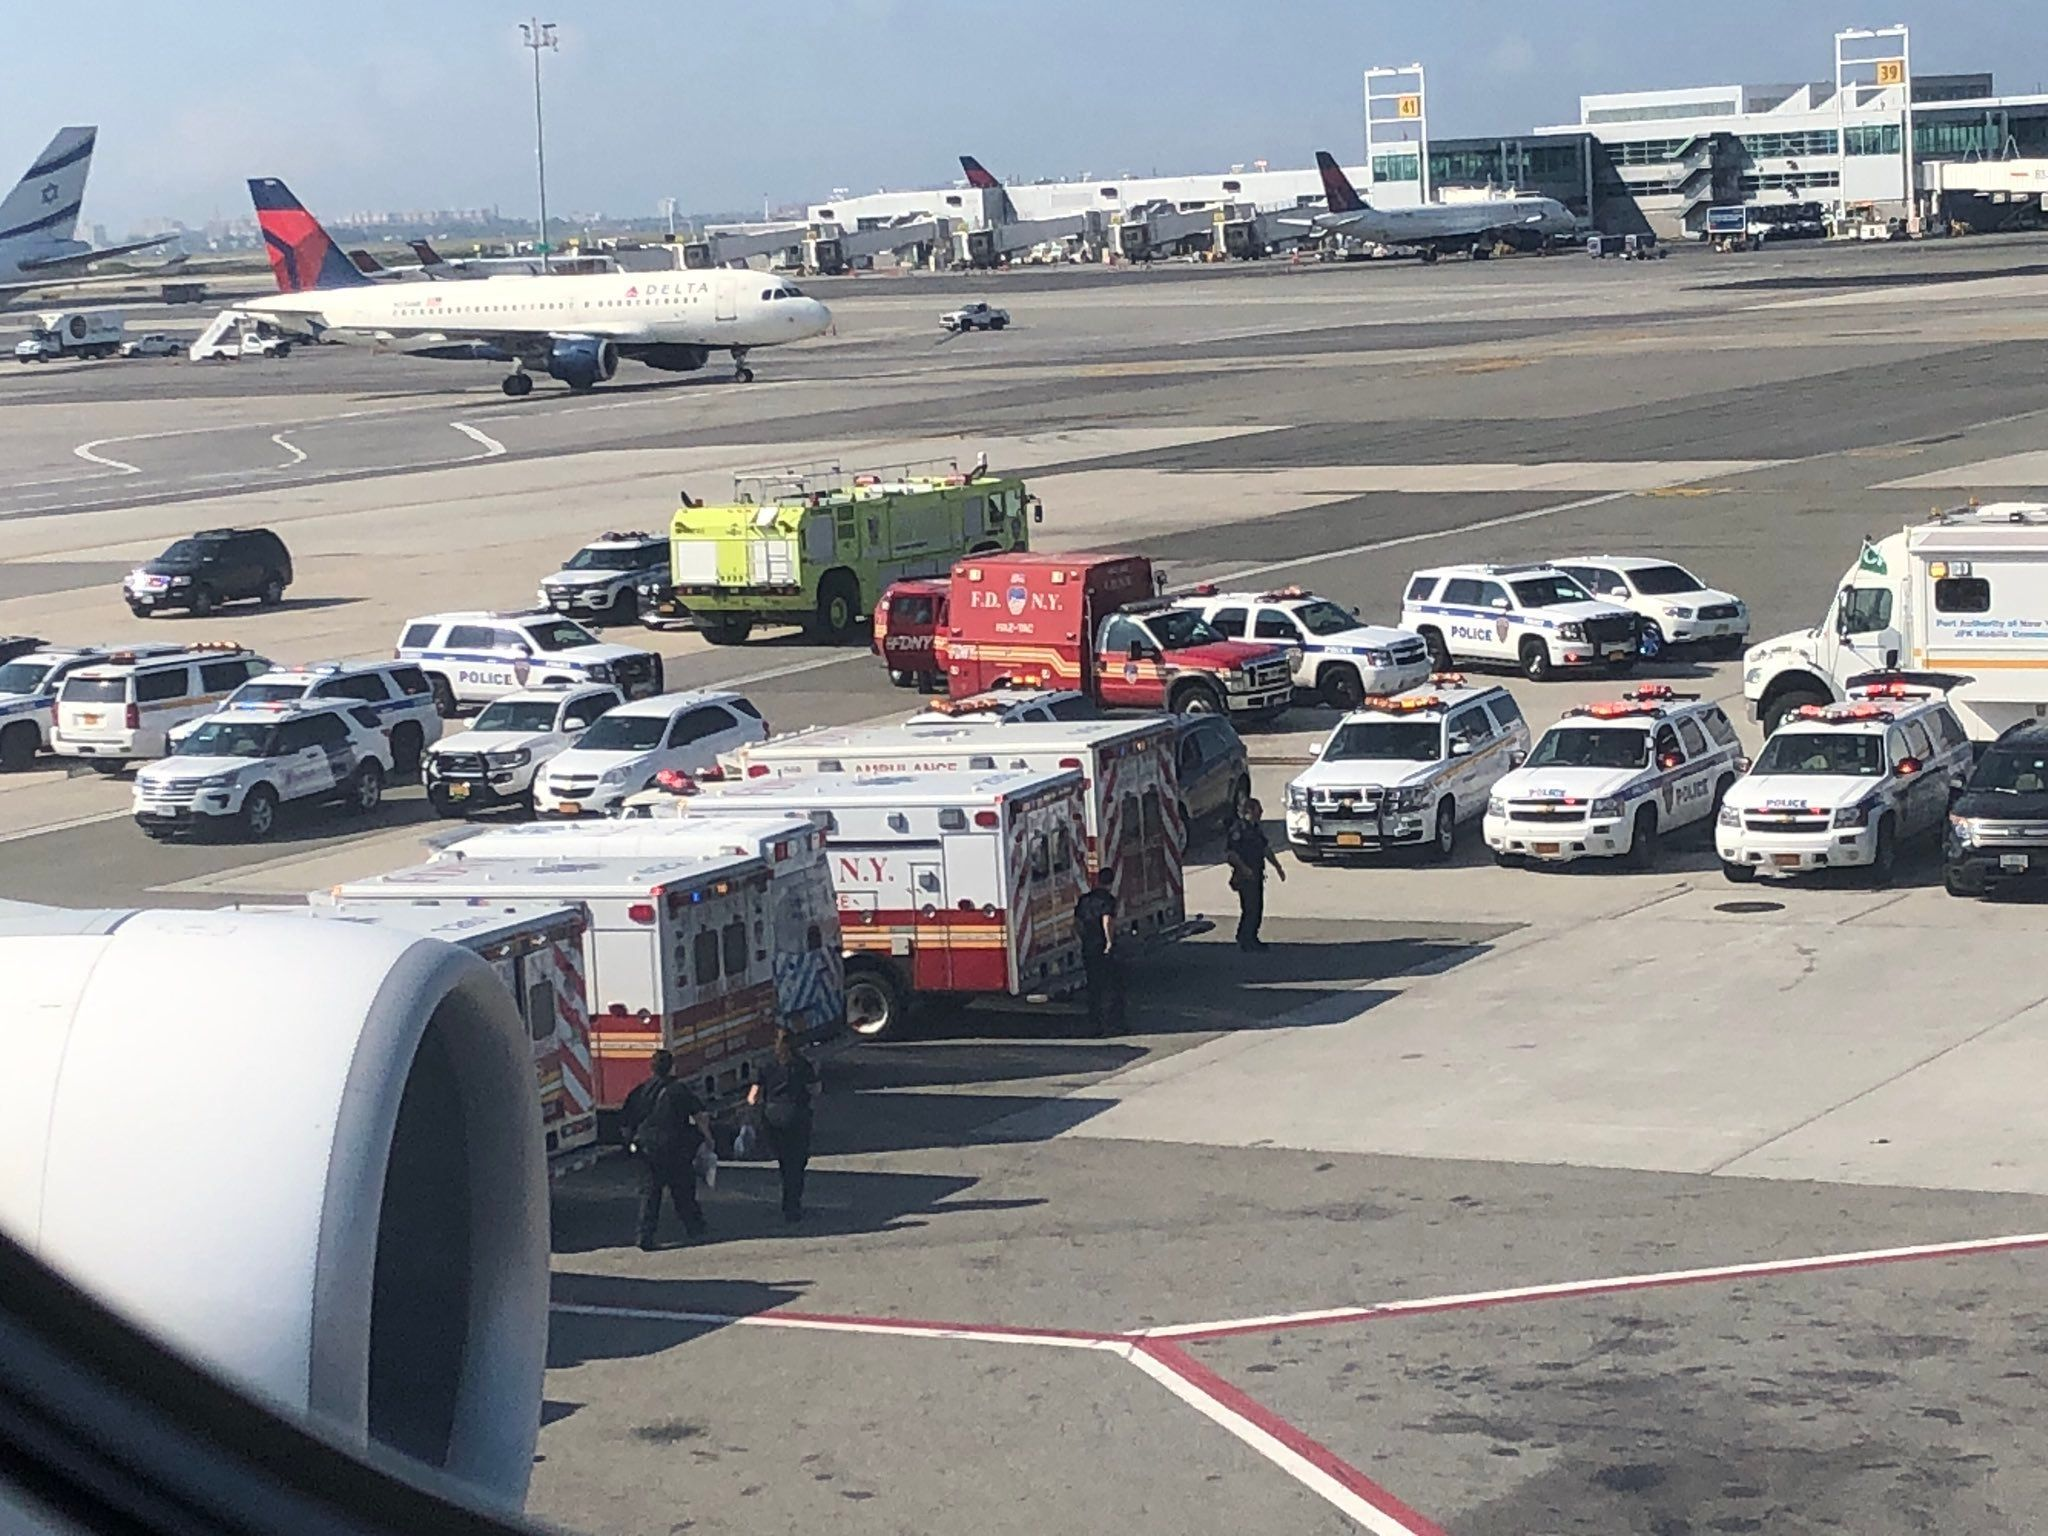 Emirates flight quarantined at JFK with 100 passengers